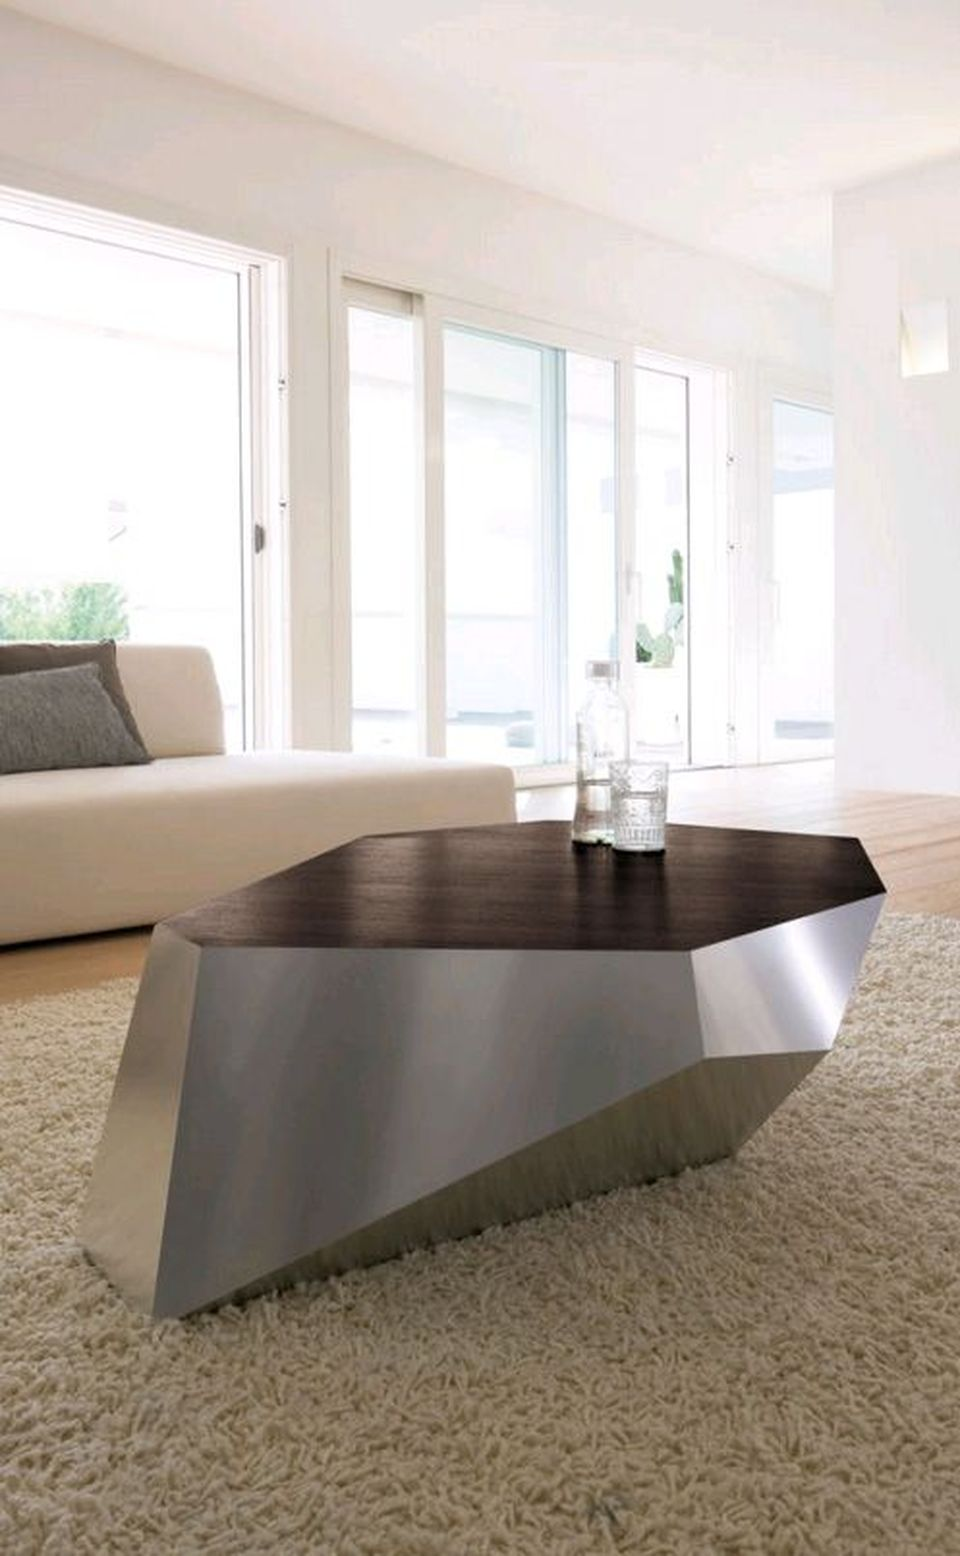 Amazing modern futuristic furniture design and concept 35